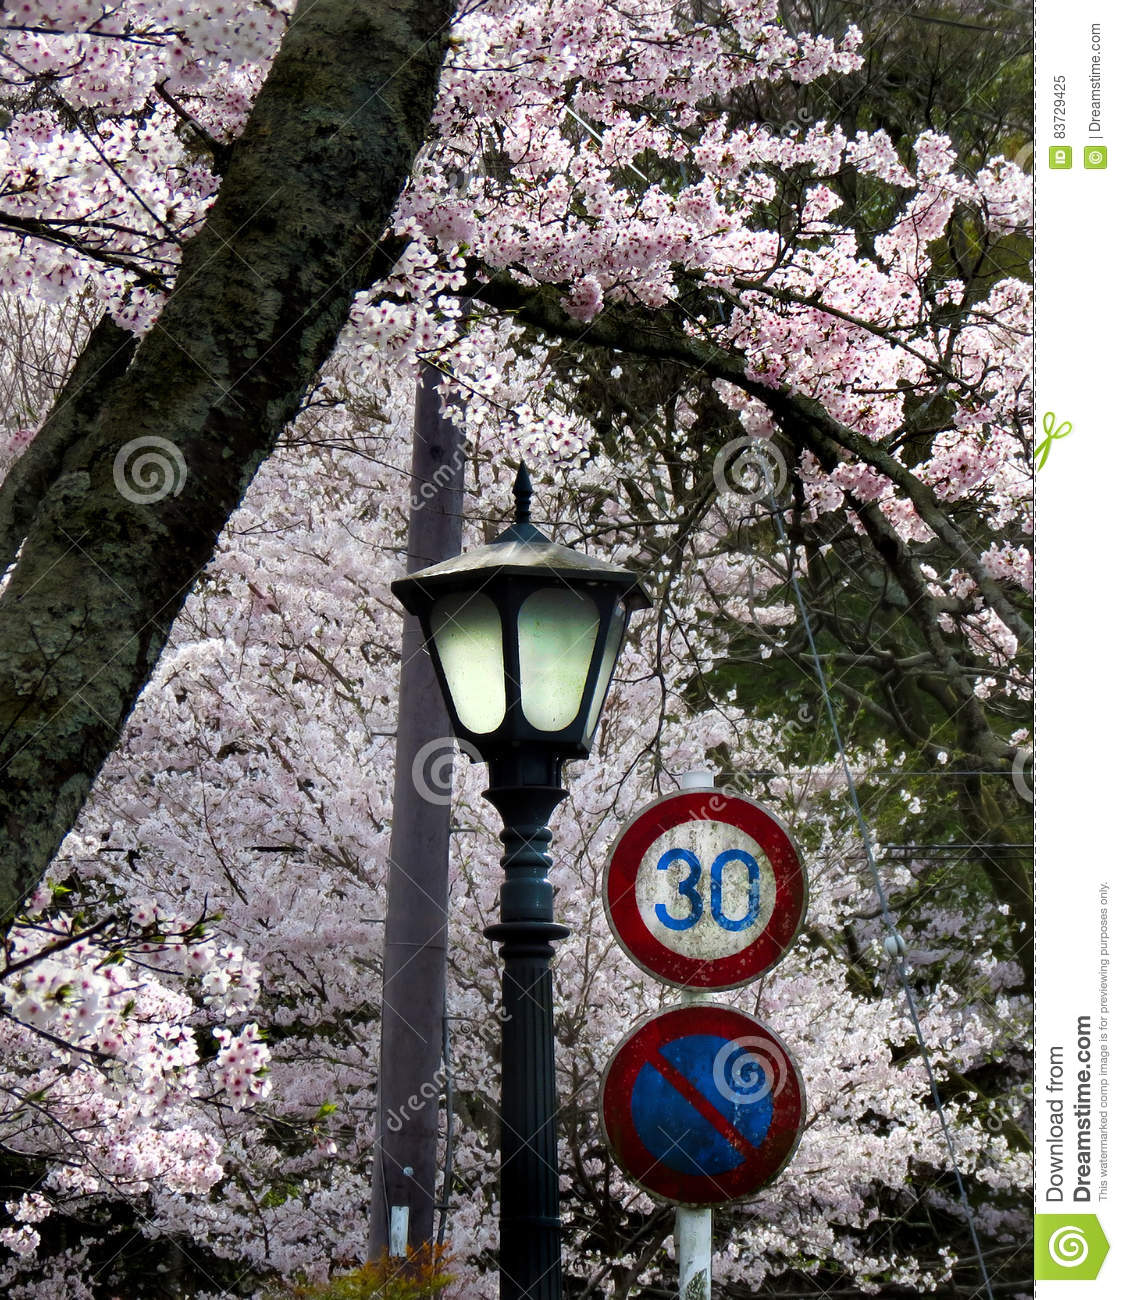 Cherry blossoms with lamppost and traffic signs